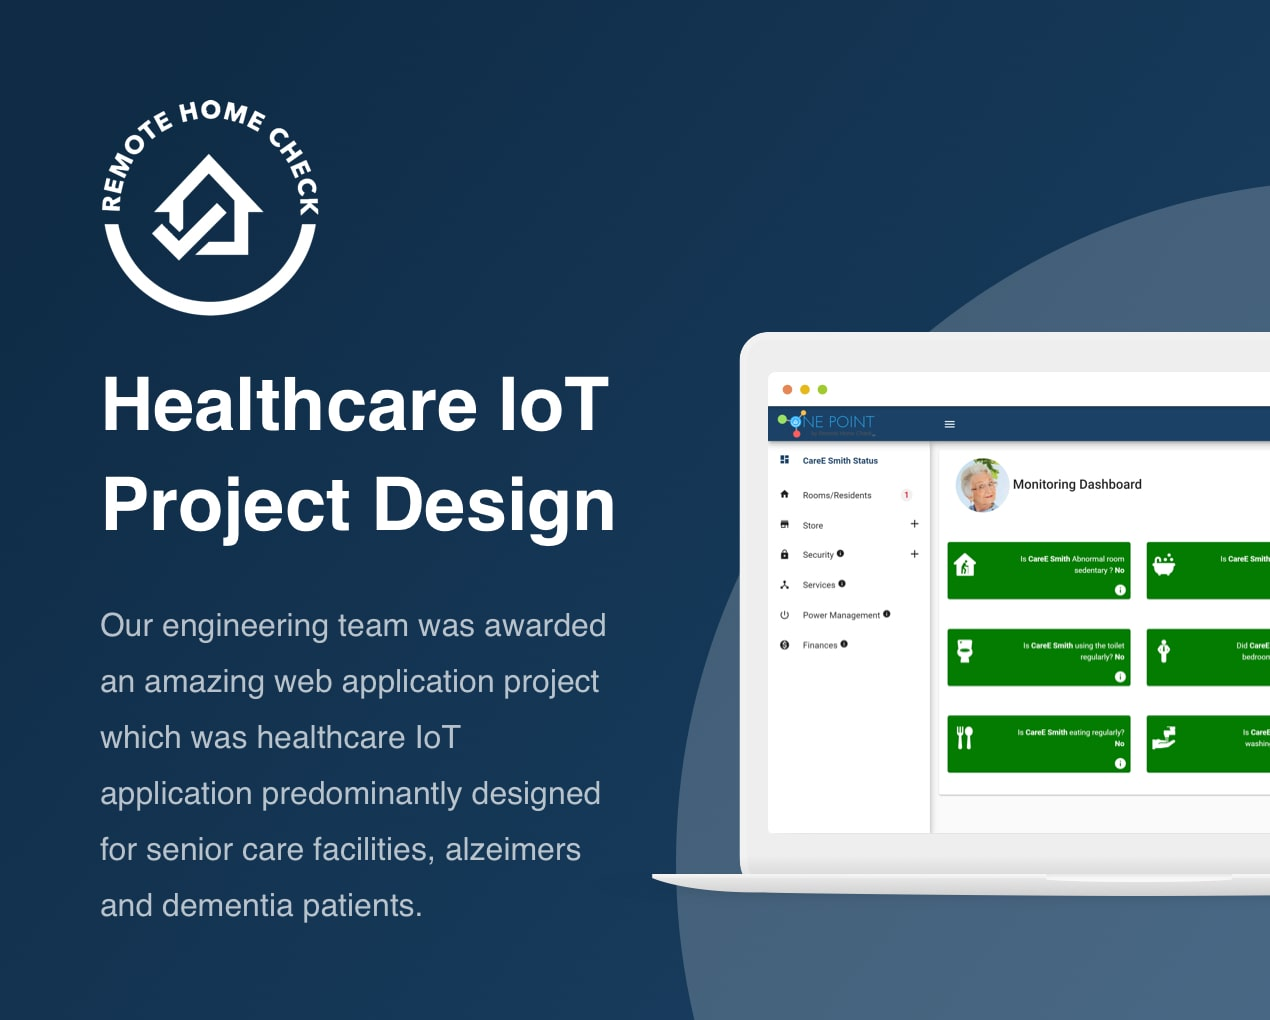 Remote Home Check - Healthcare IoT Project